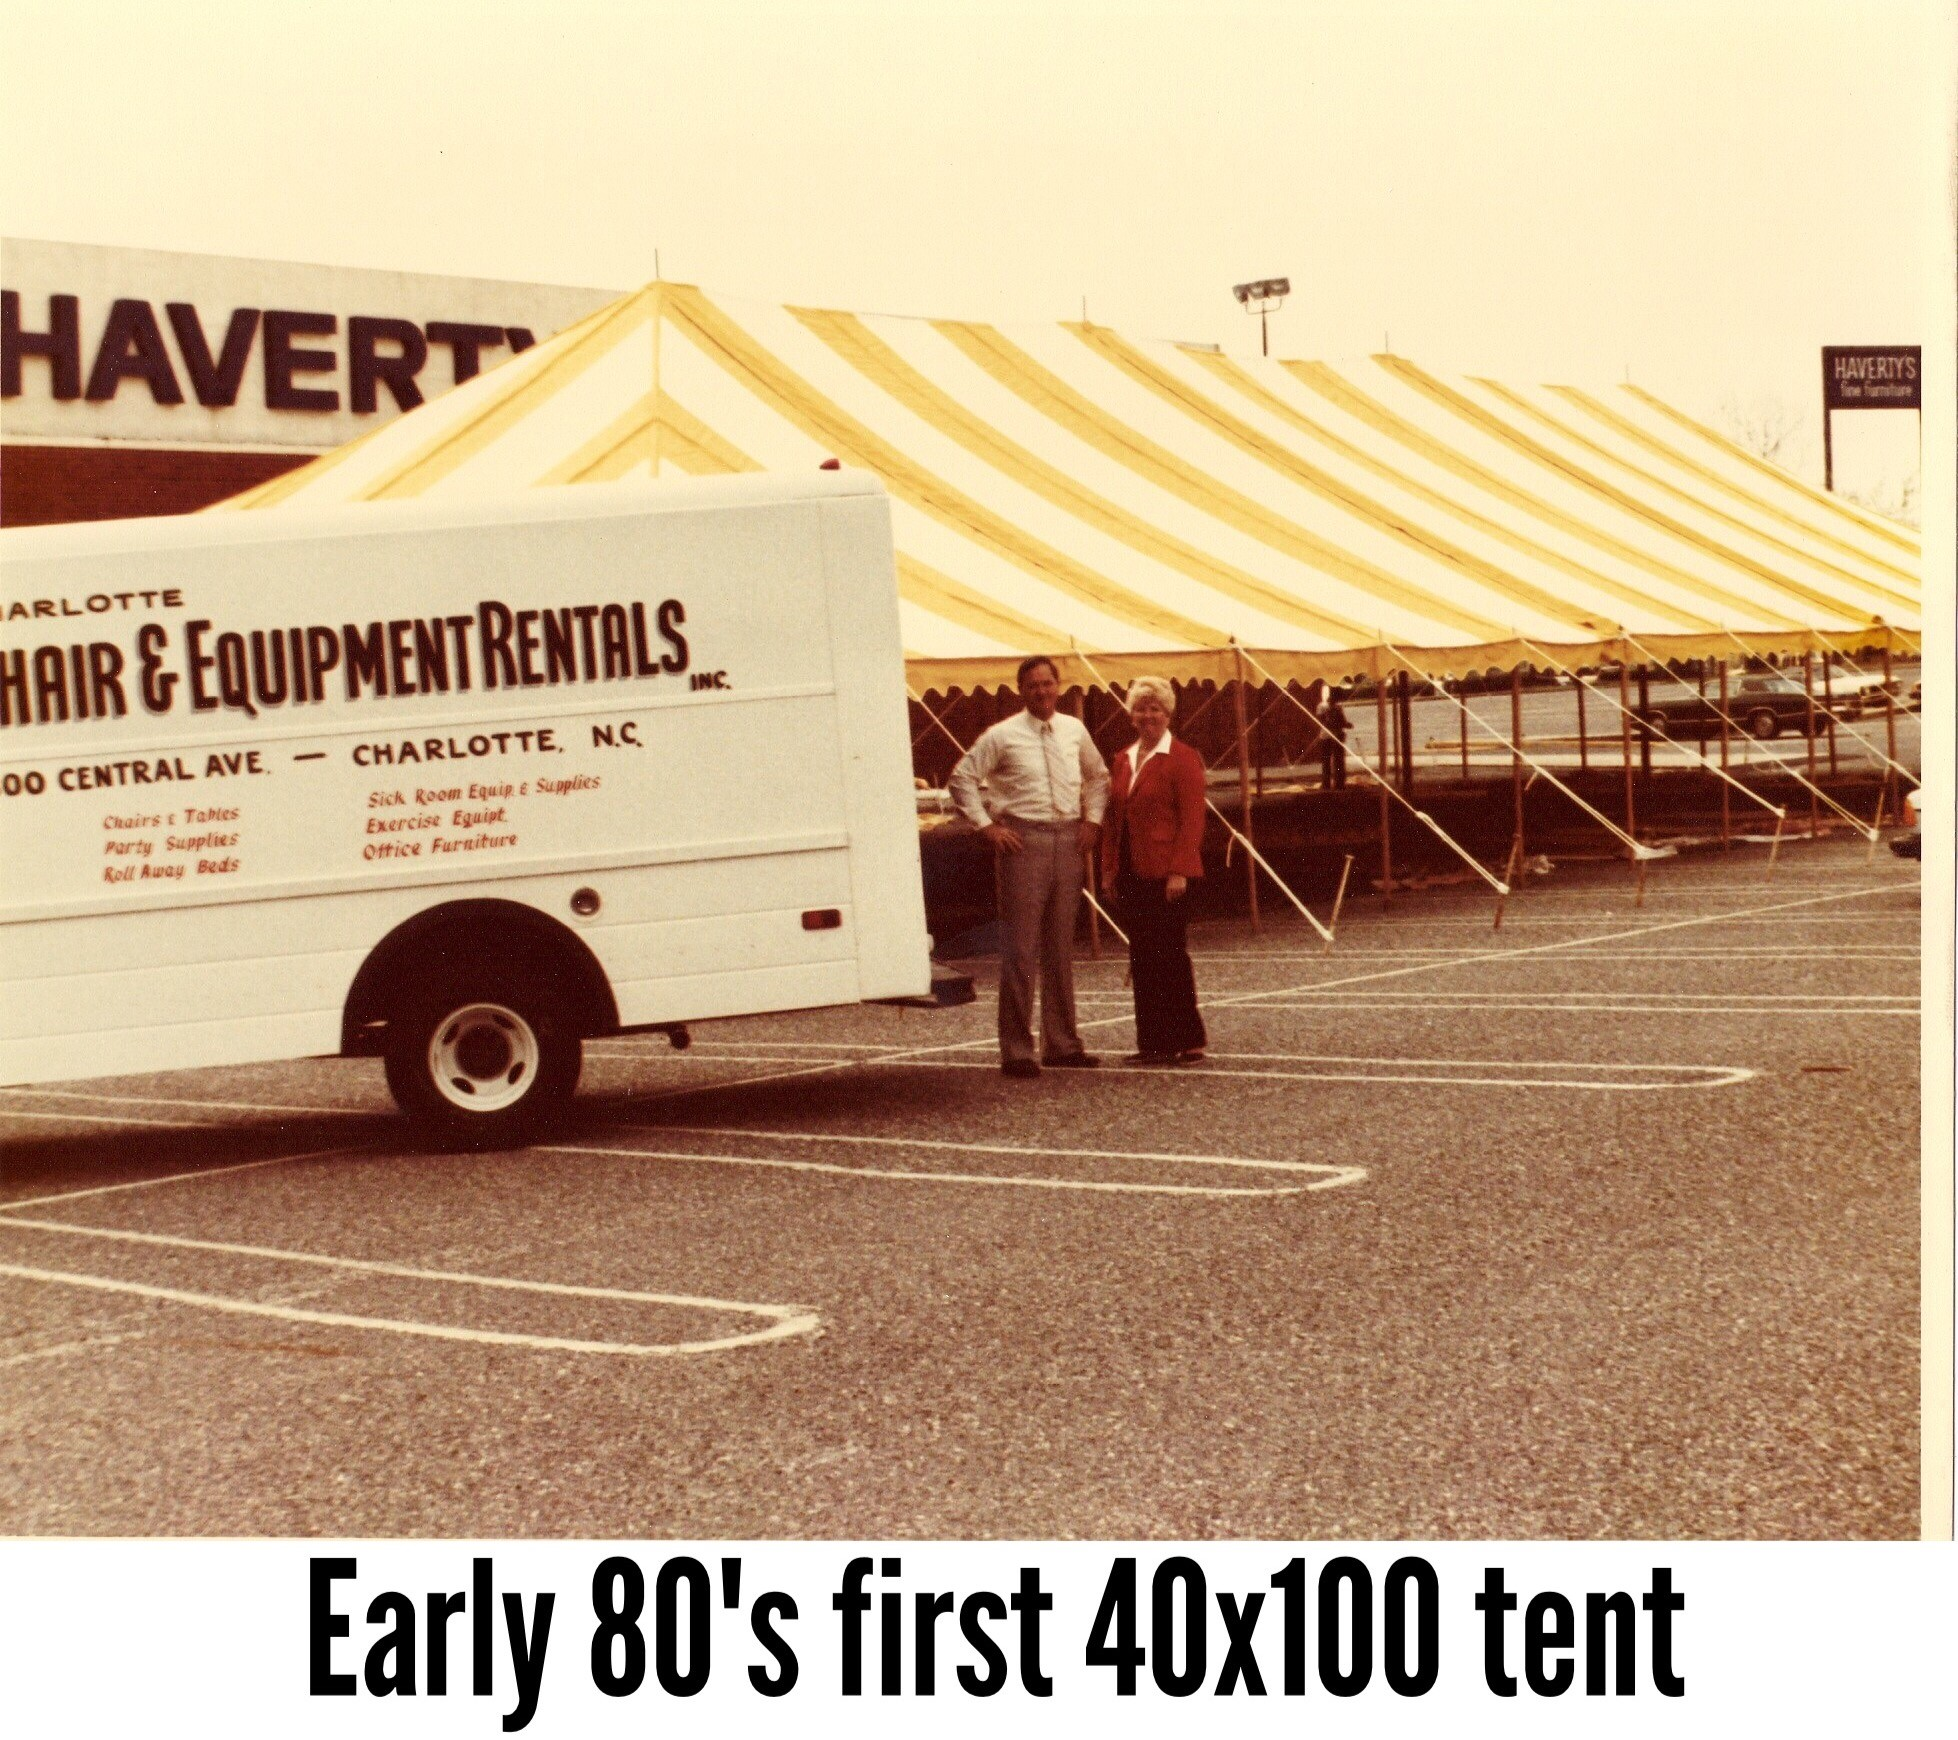 1st 40'X100' tent purchased by Party Reflections